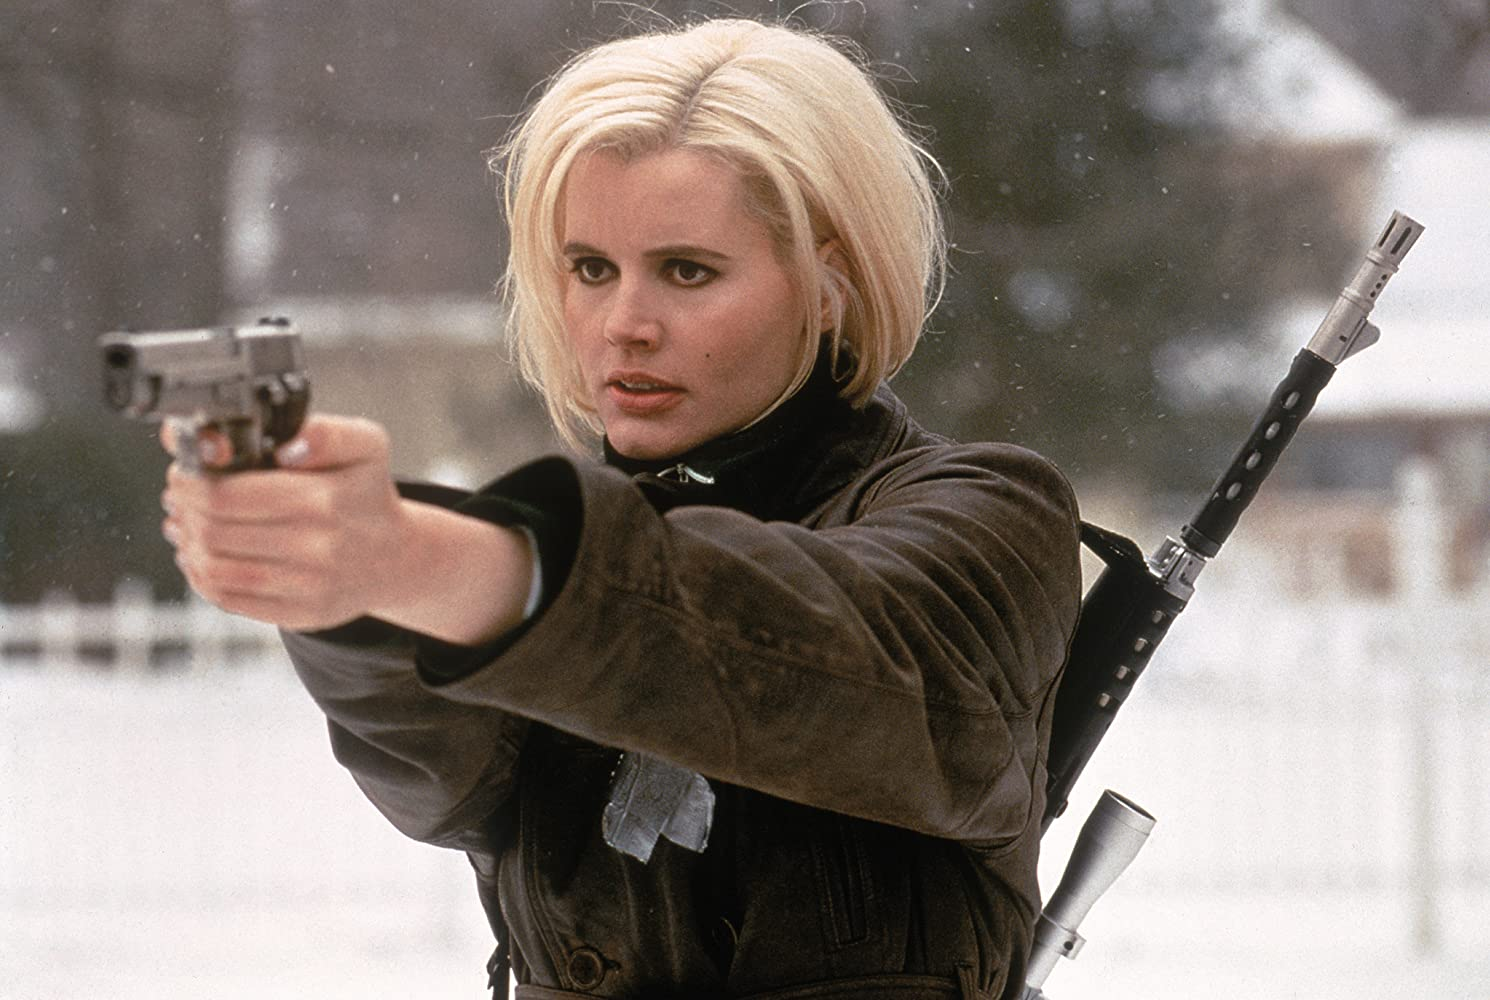 Geena Davis in veste da assassina in una scena del film Spy